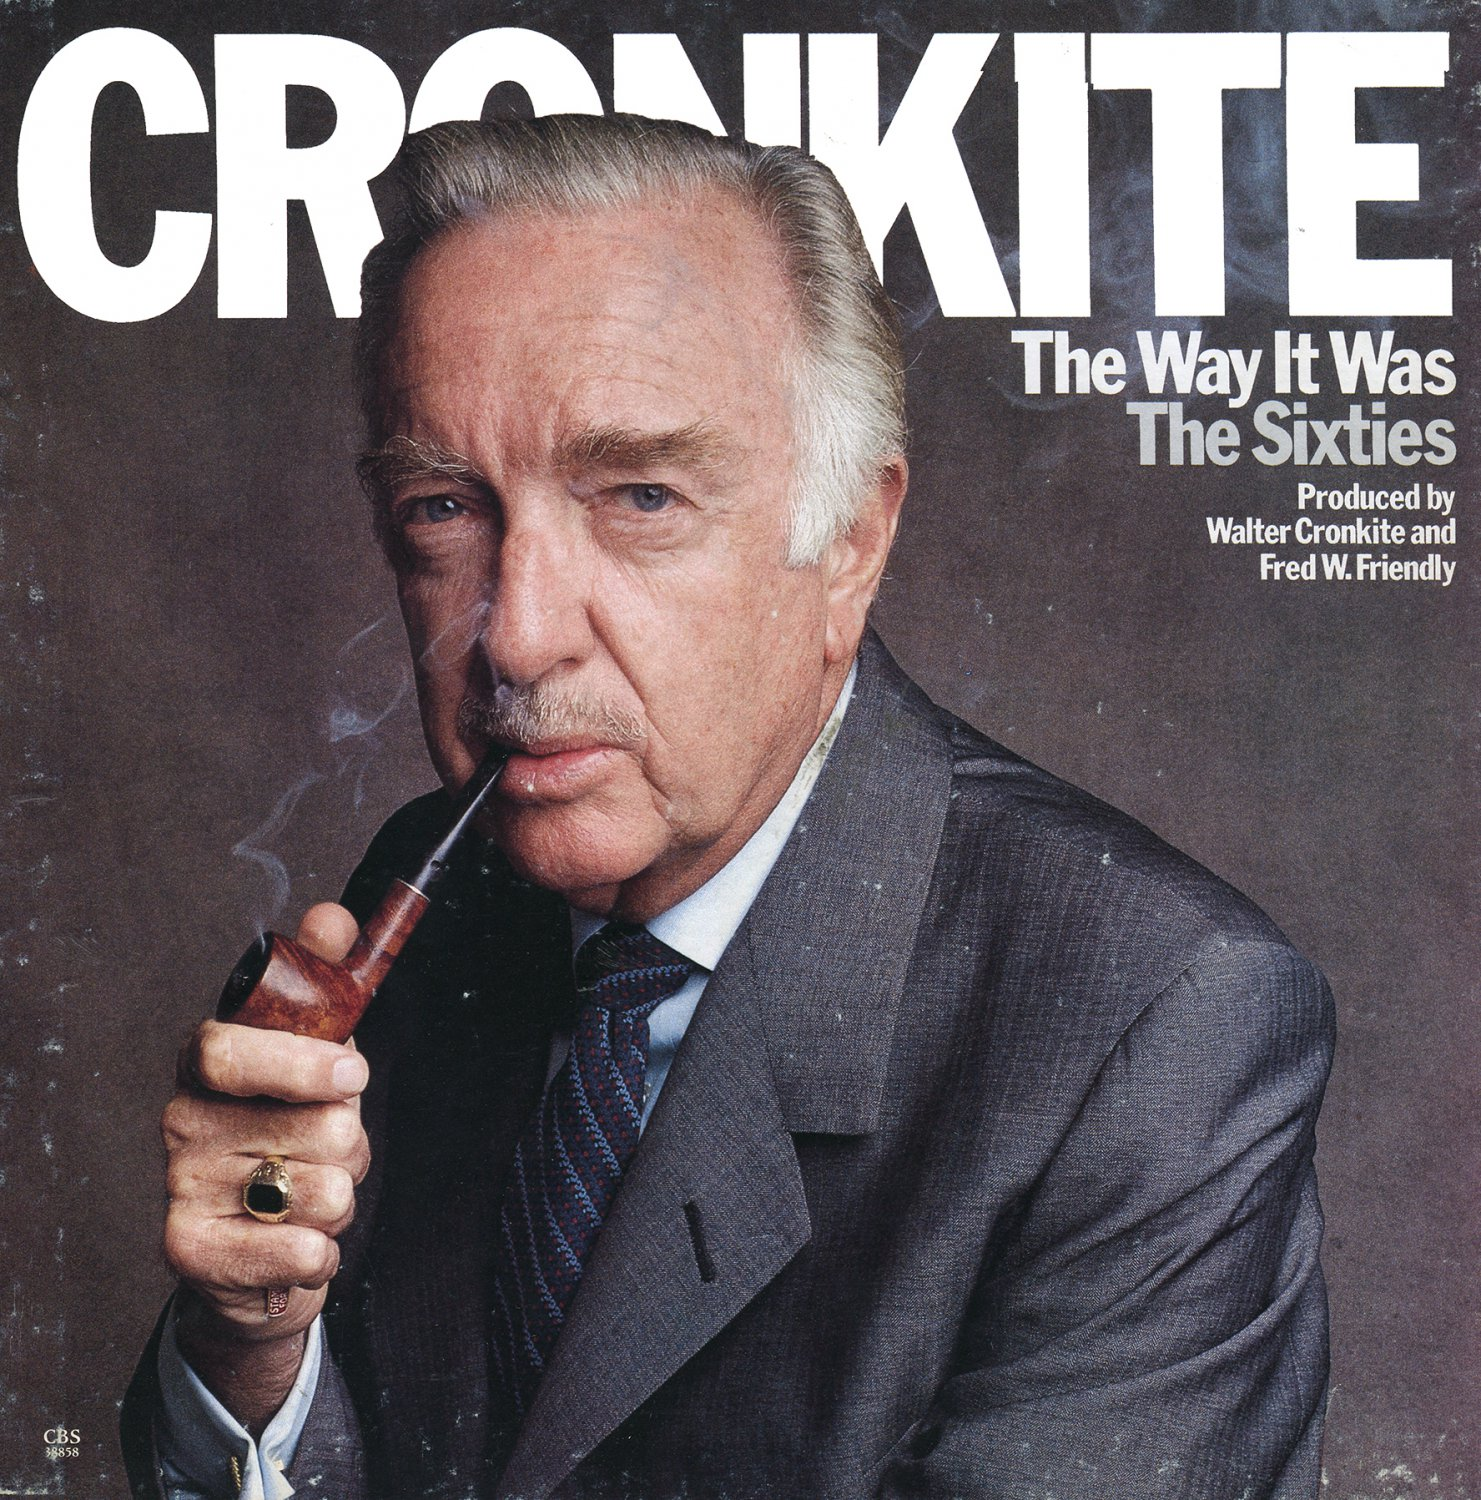 Cronkite: The Way It Was/The Sixties, Walter Cronkite Narrates LP/CD